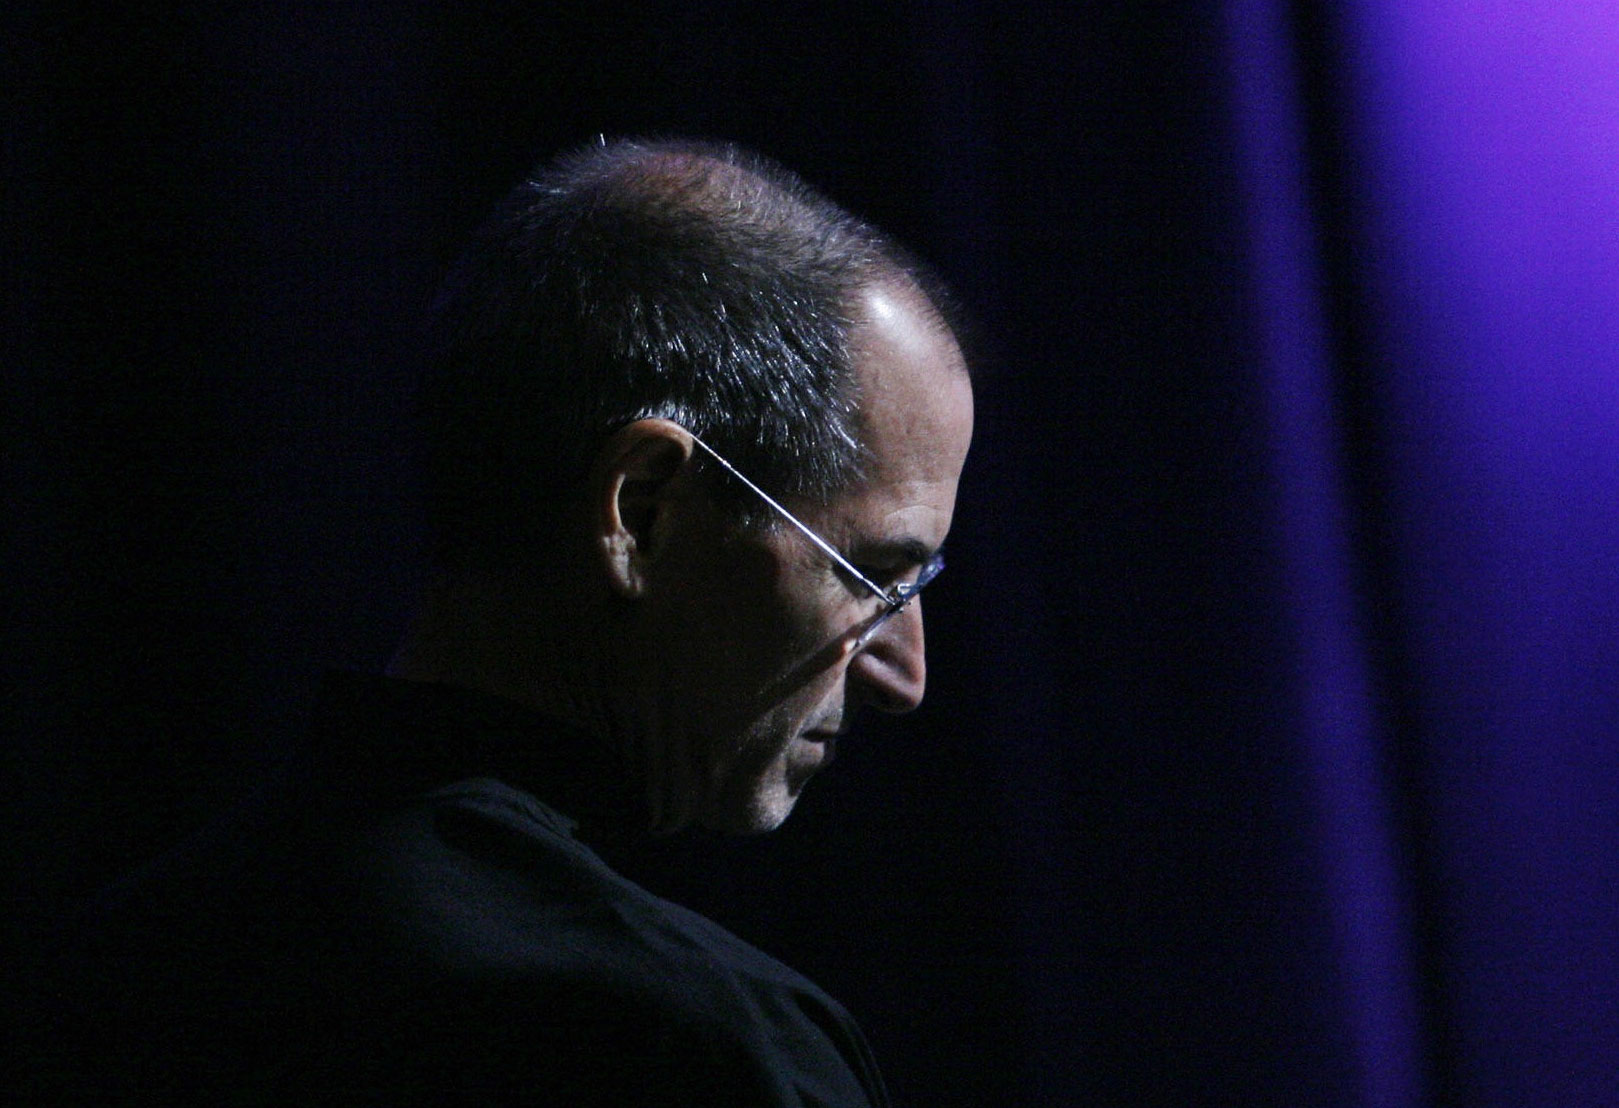 the effects of steve jobs and There's been much coverage on the life and contributions of steve jobs in light of his passing—justifiably so given his immeasurable impact on the way we interact today.